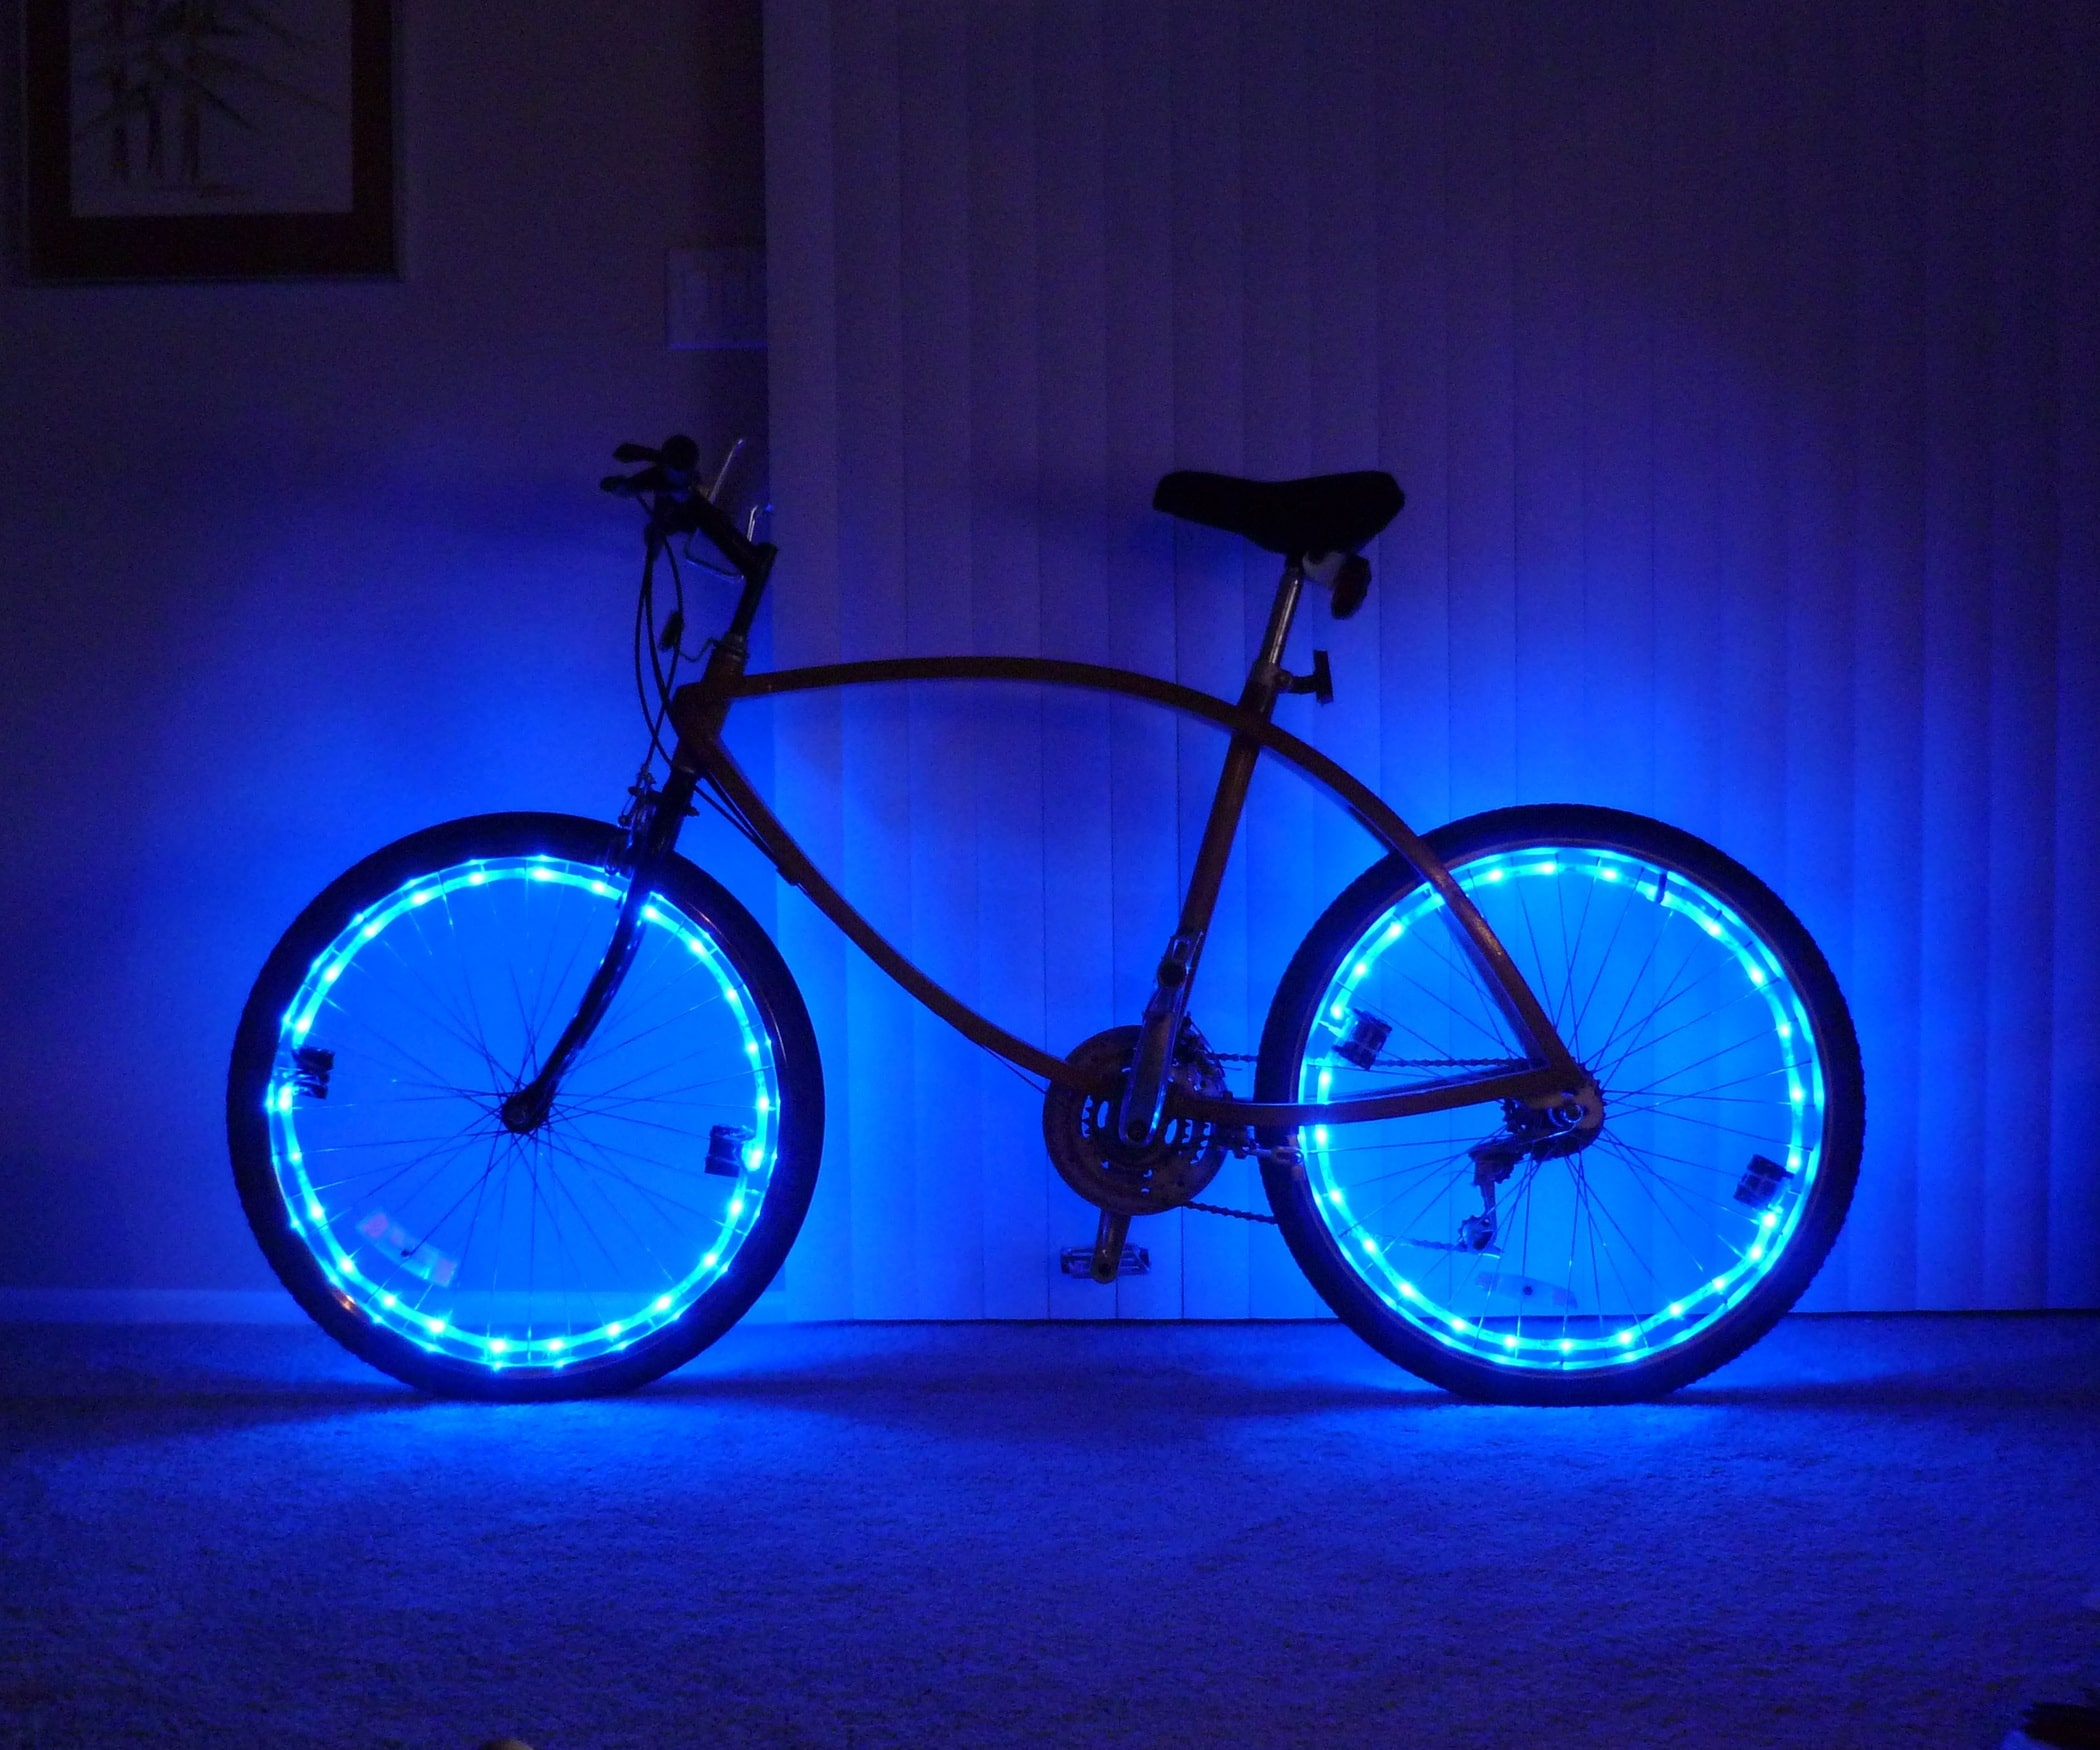 Bike with Lights